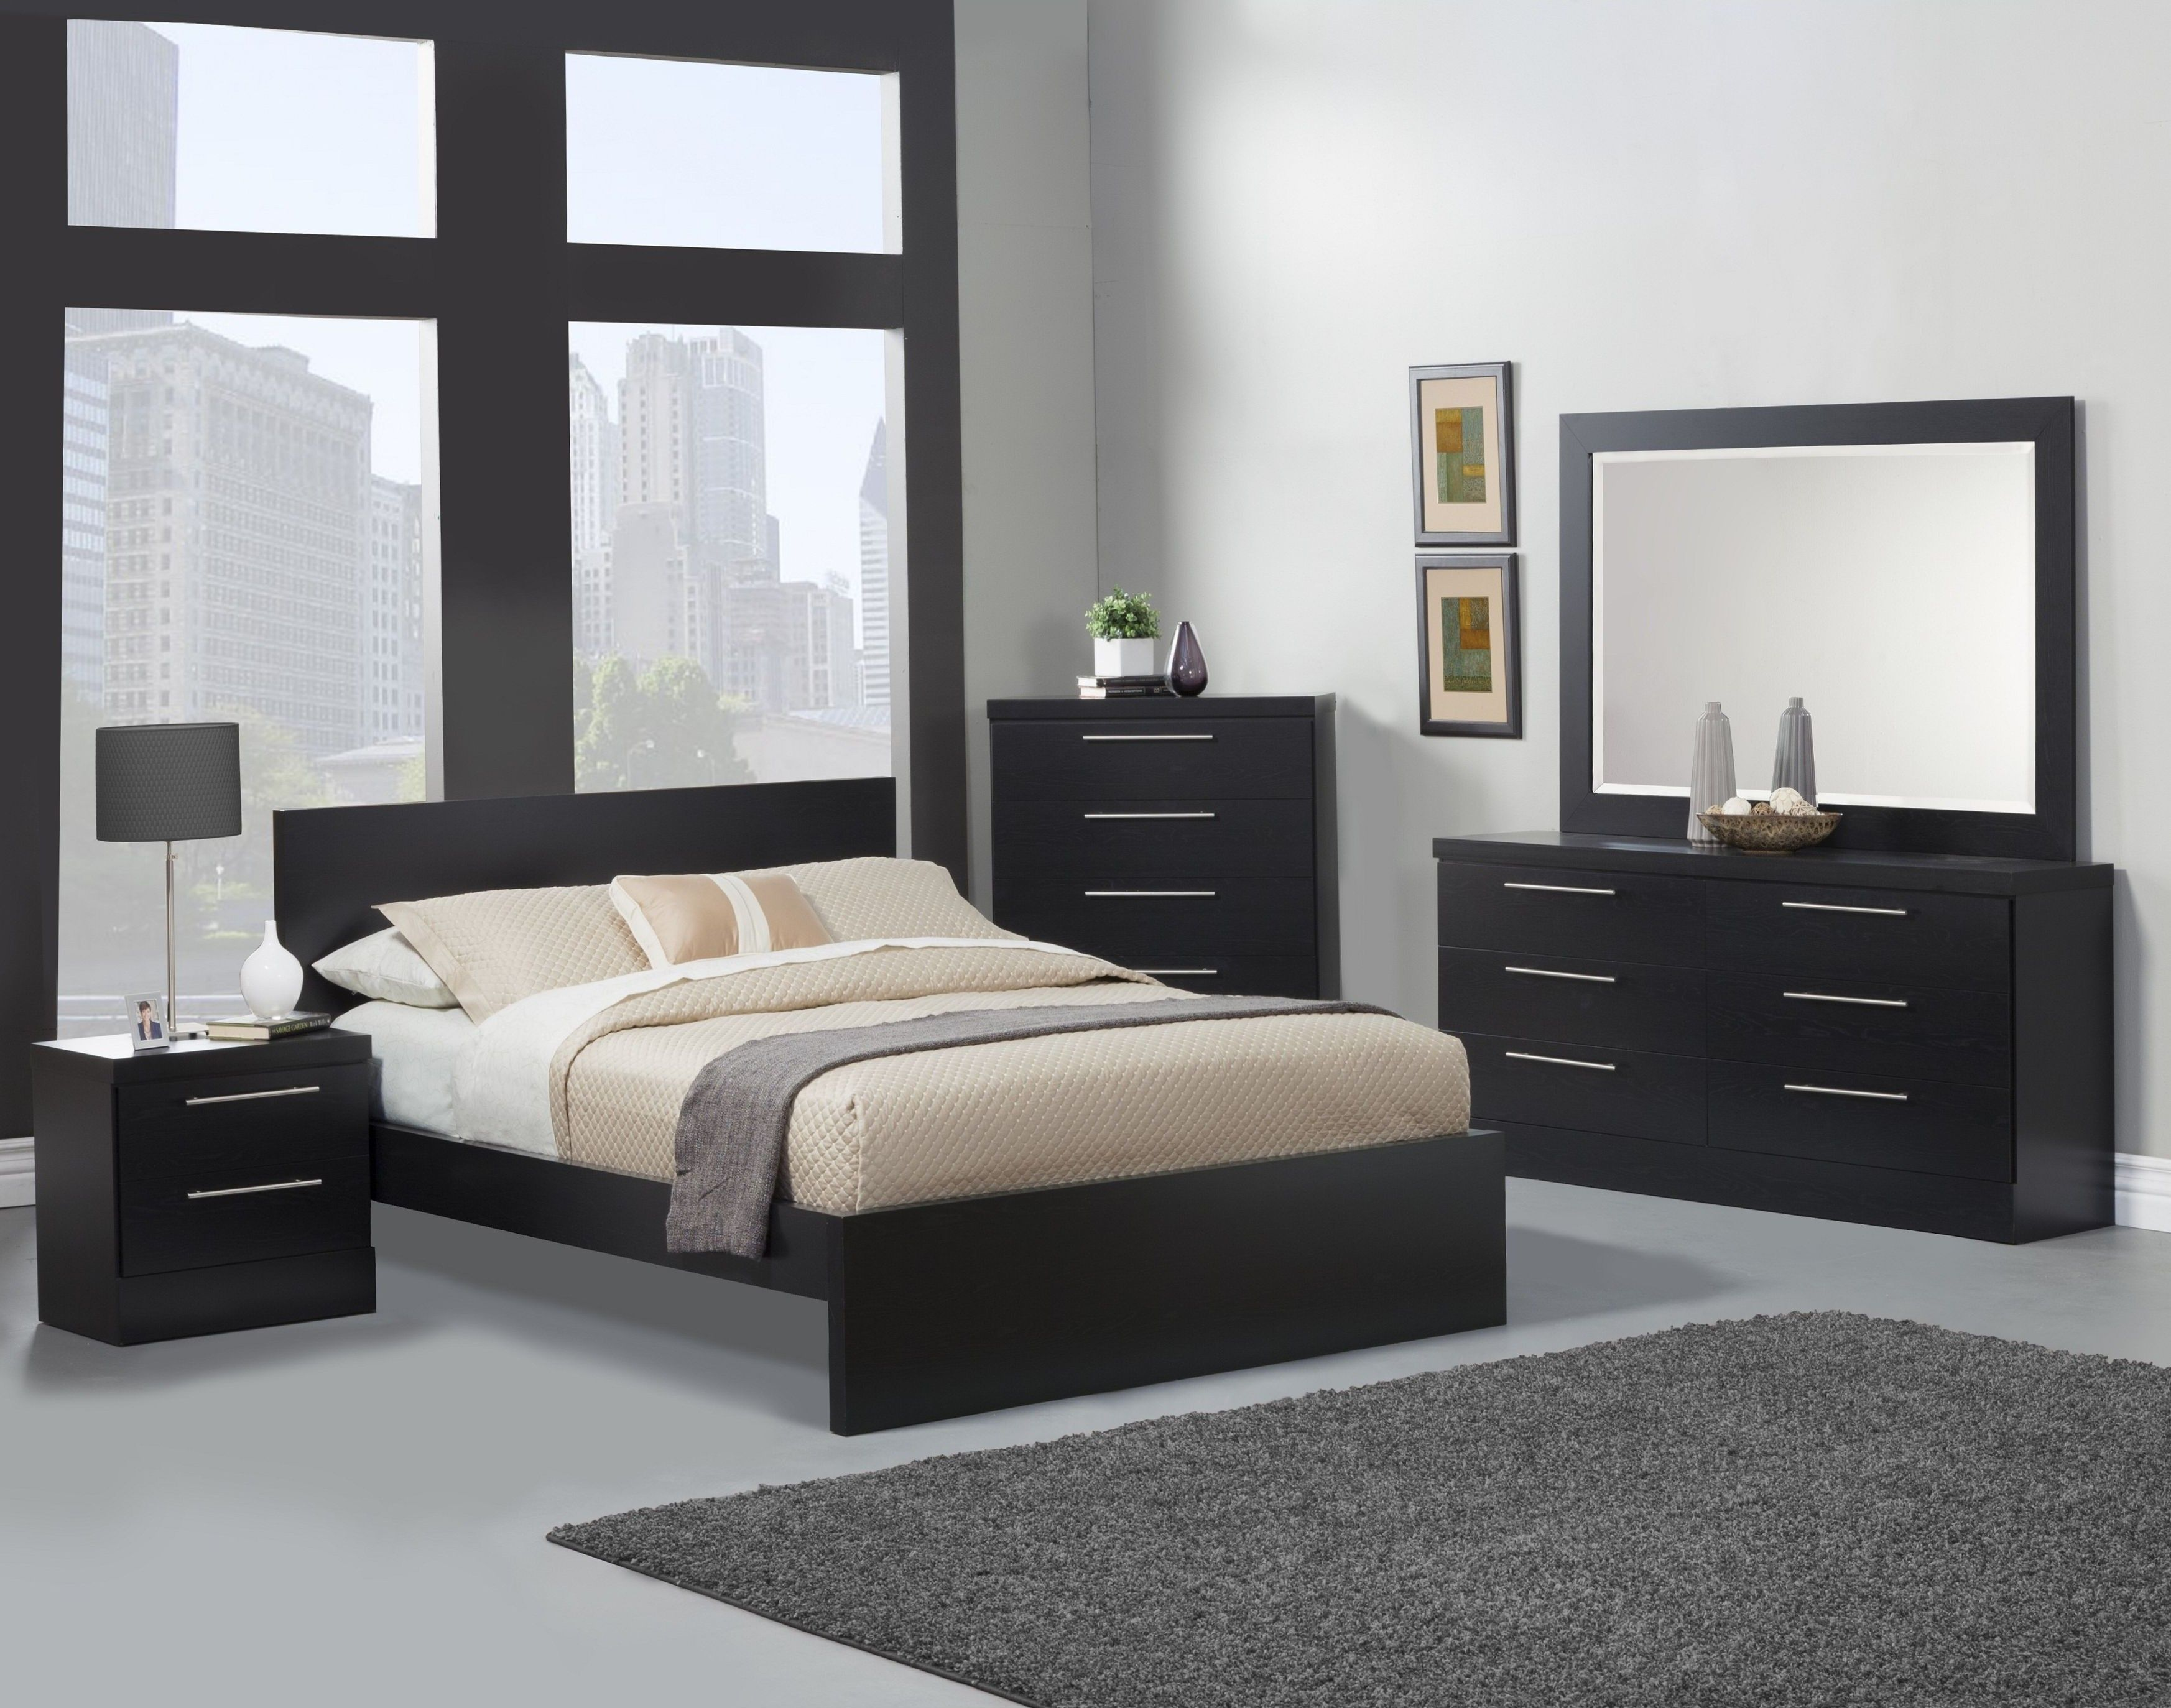 Elegant Bedroom Furniture With Minimalist Interior Design Bedroom